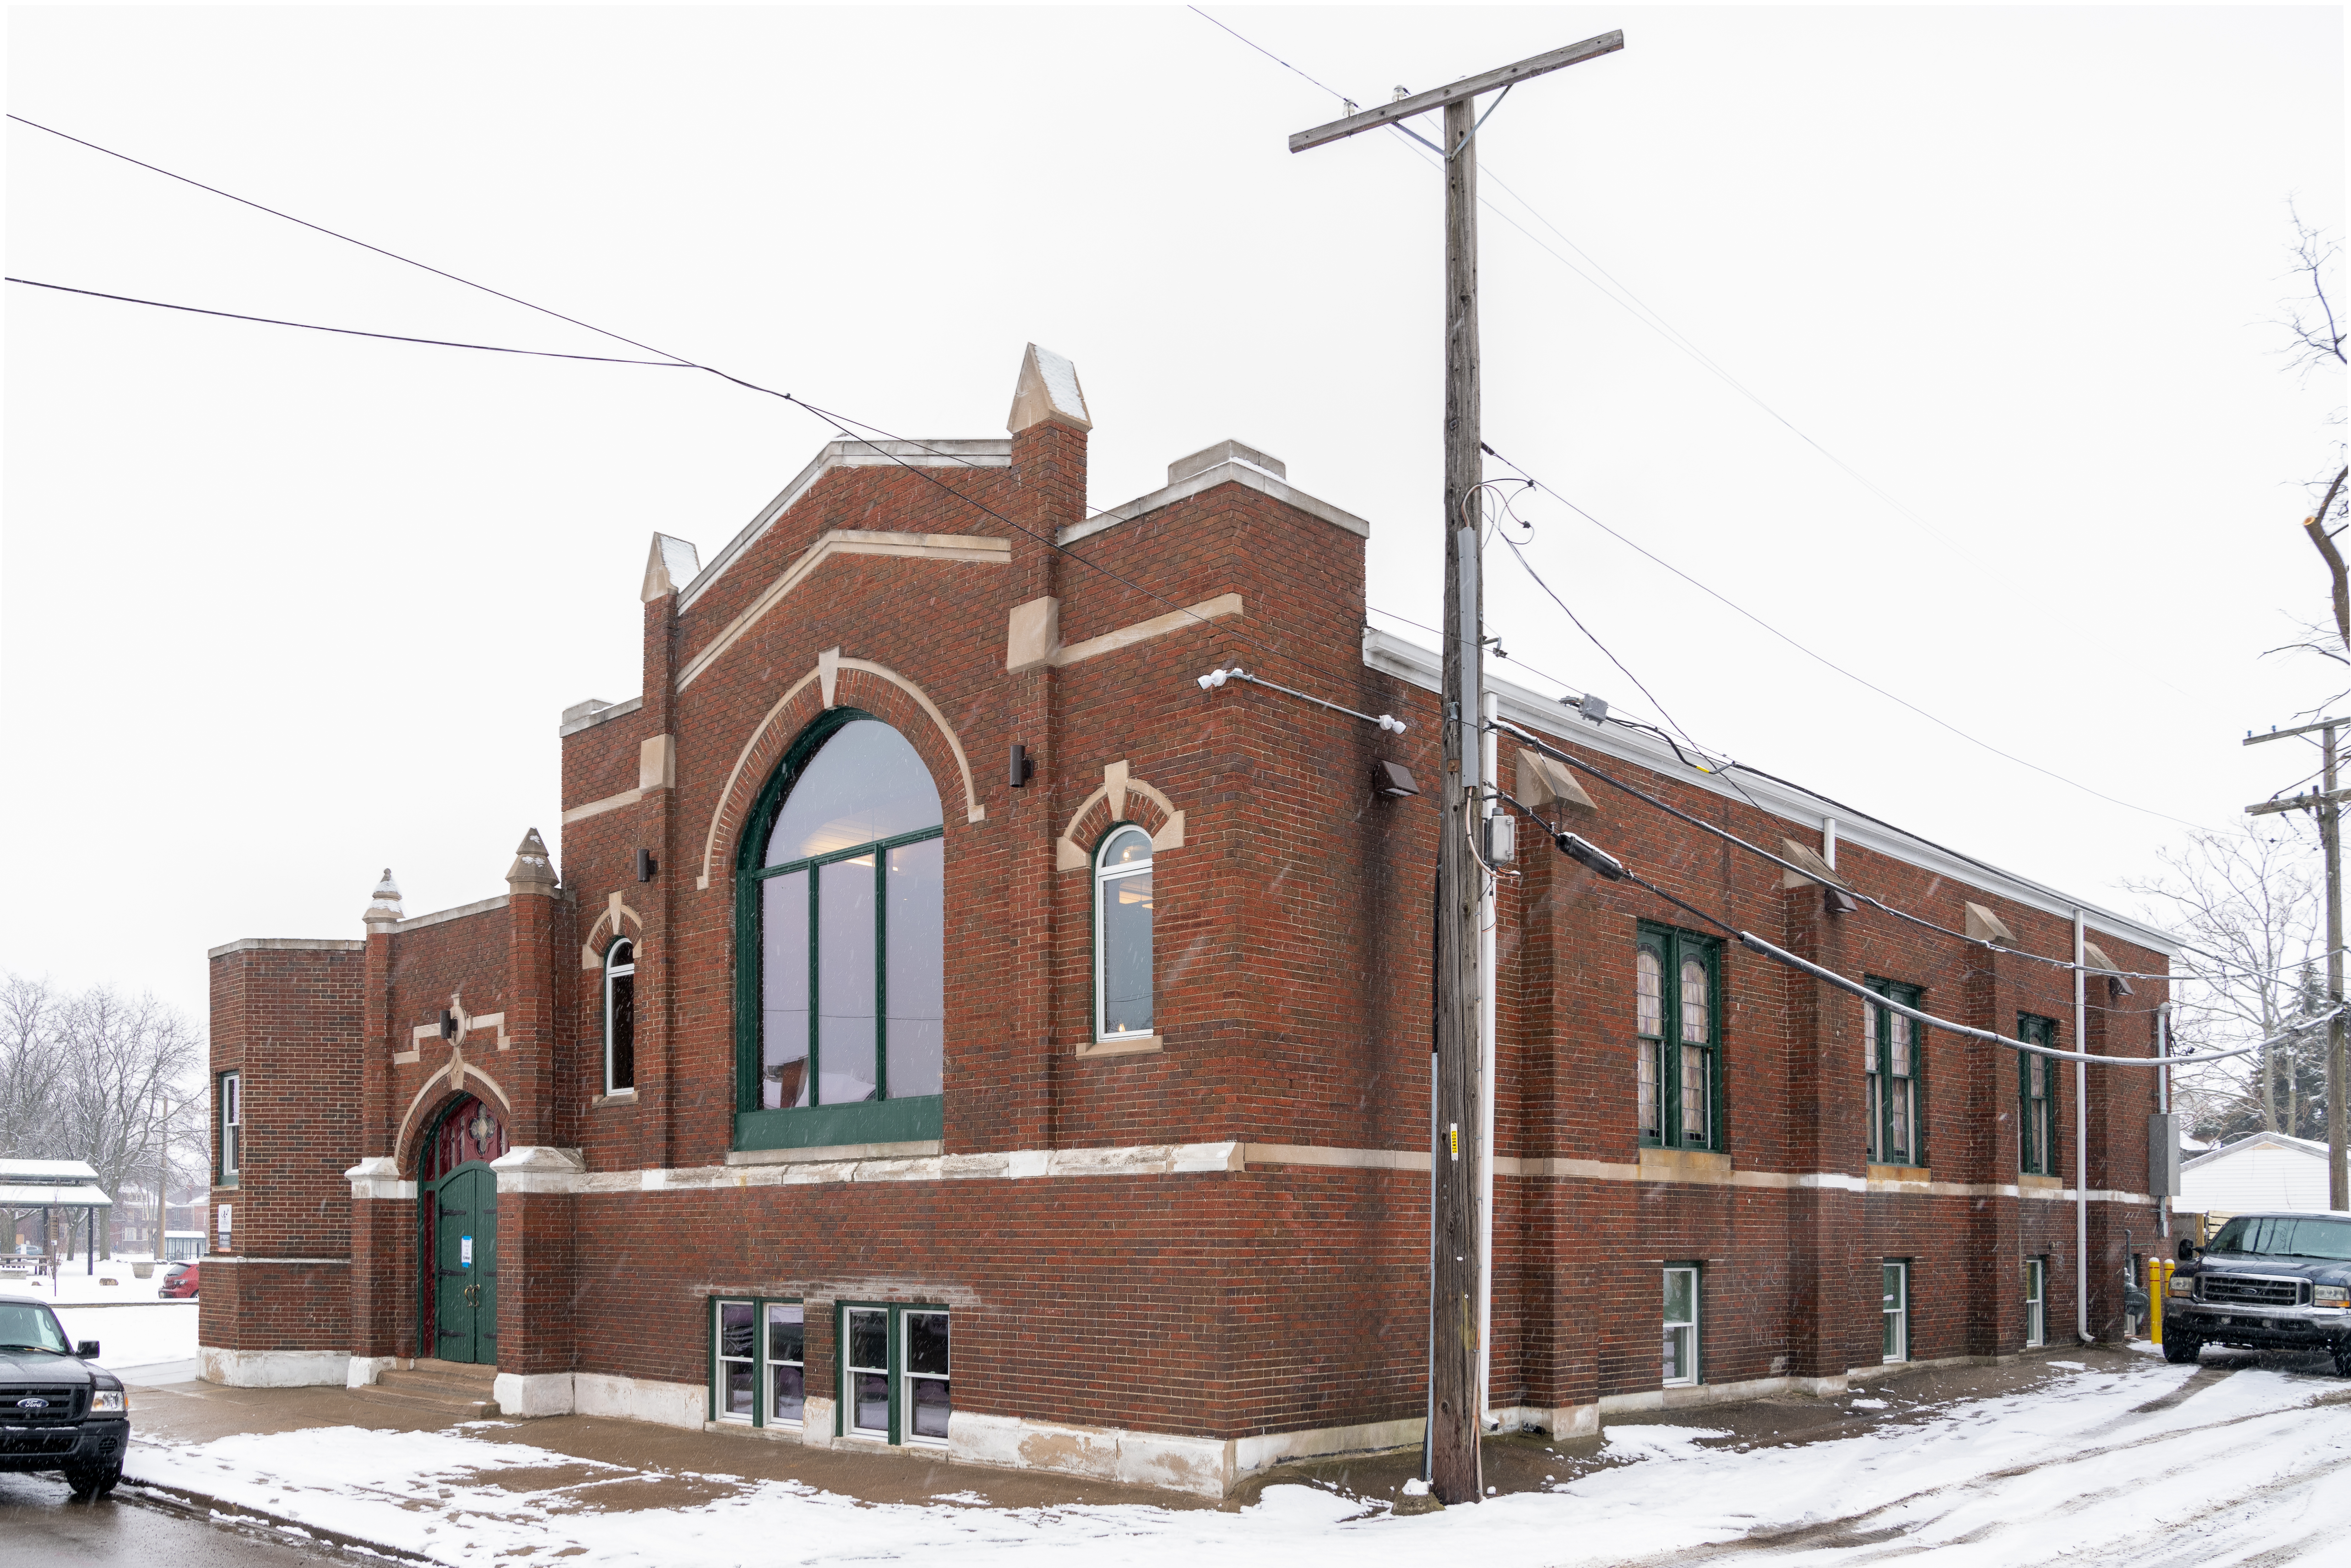 The exterior of a 1920 church in Boston-Edison is made from brick with a large shield-shaped window in front. Snow is on the ground.